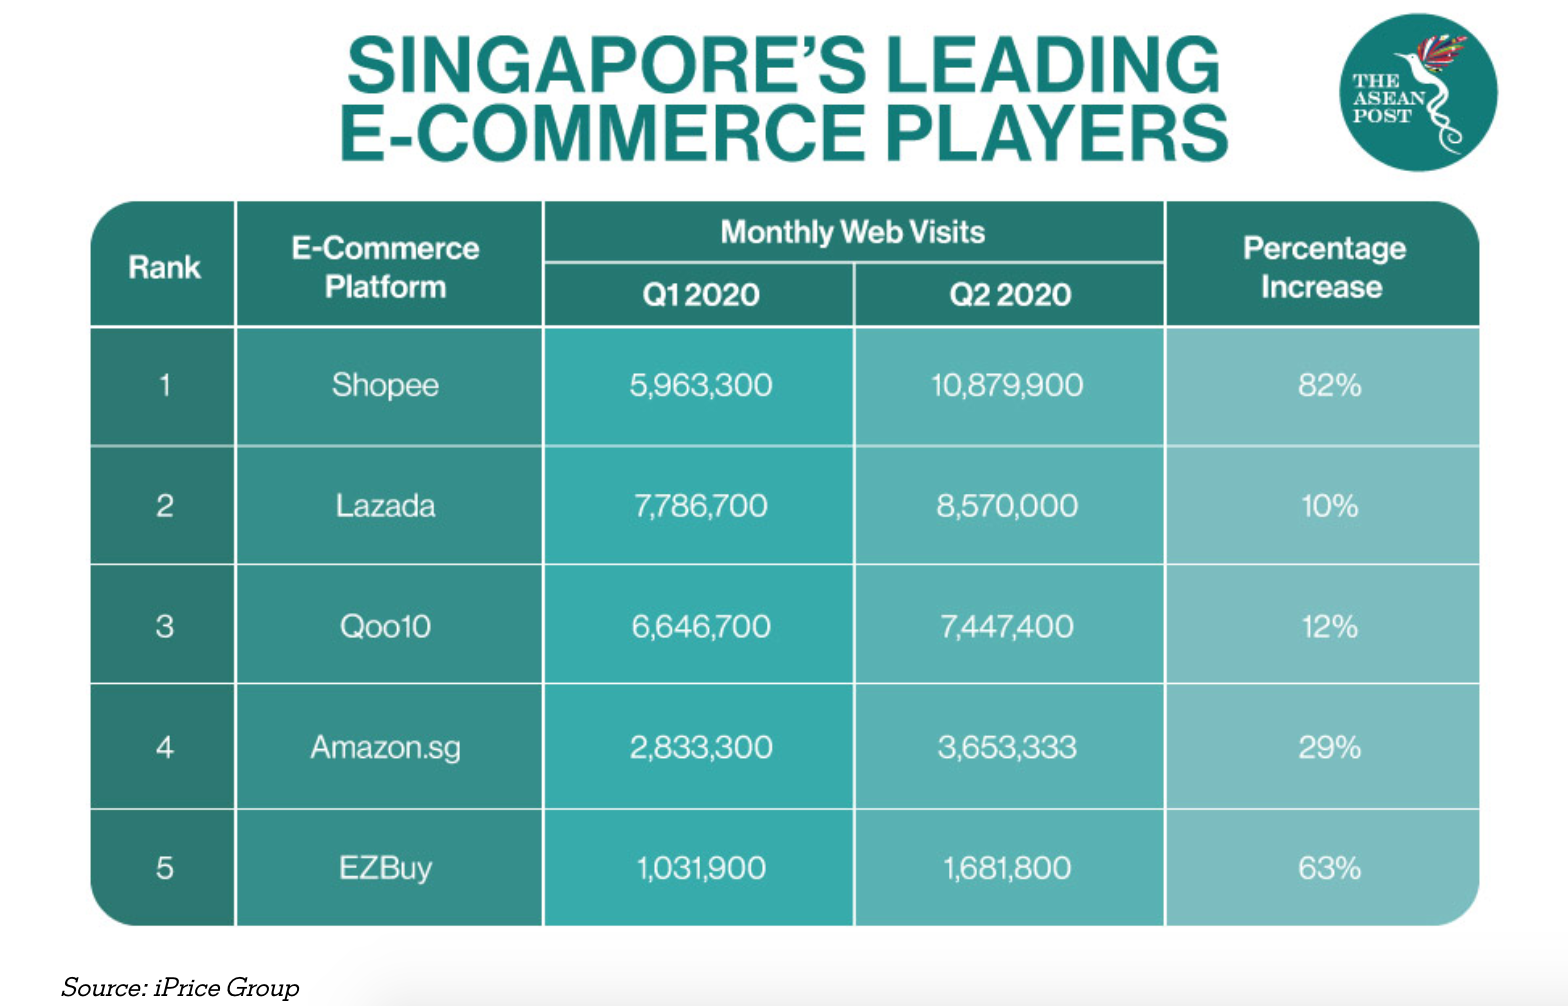 sg ecommerce players